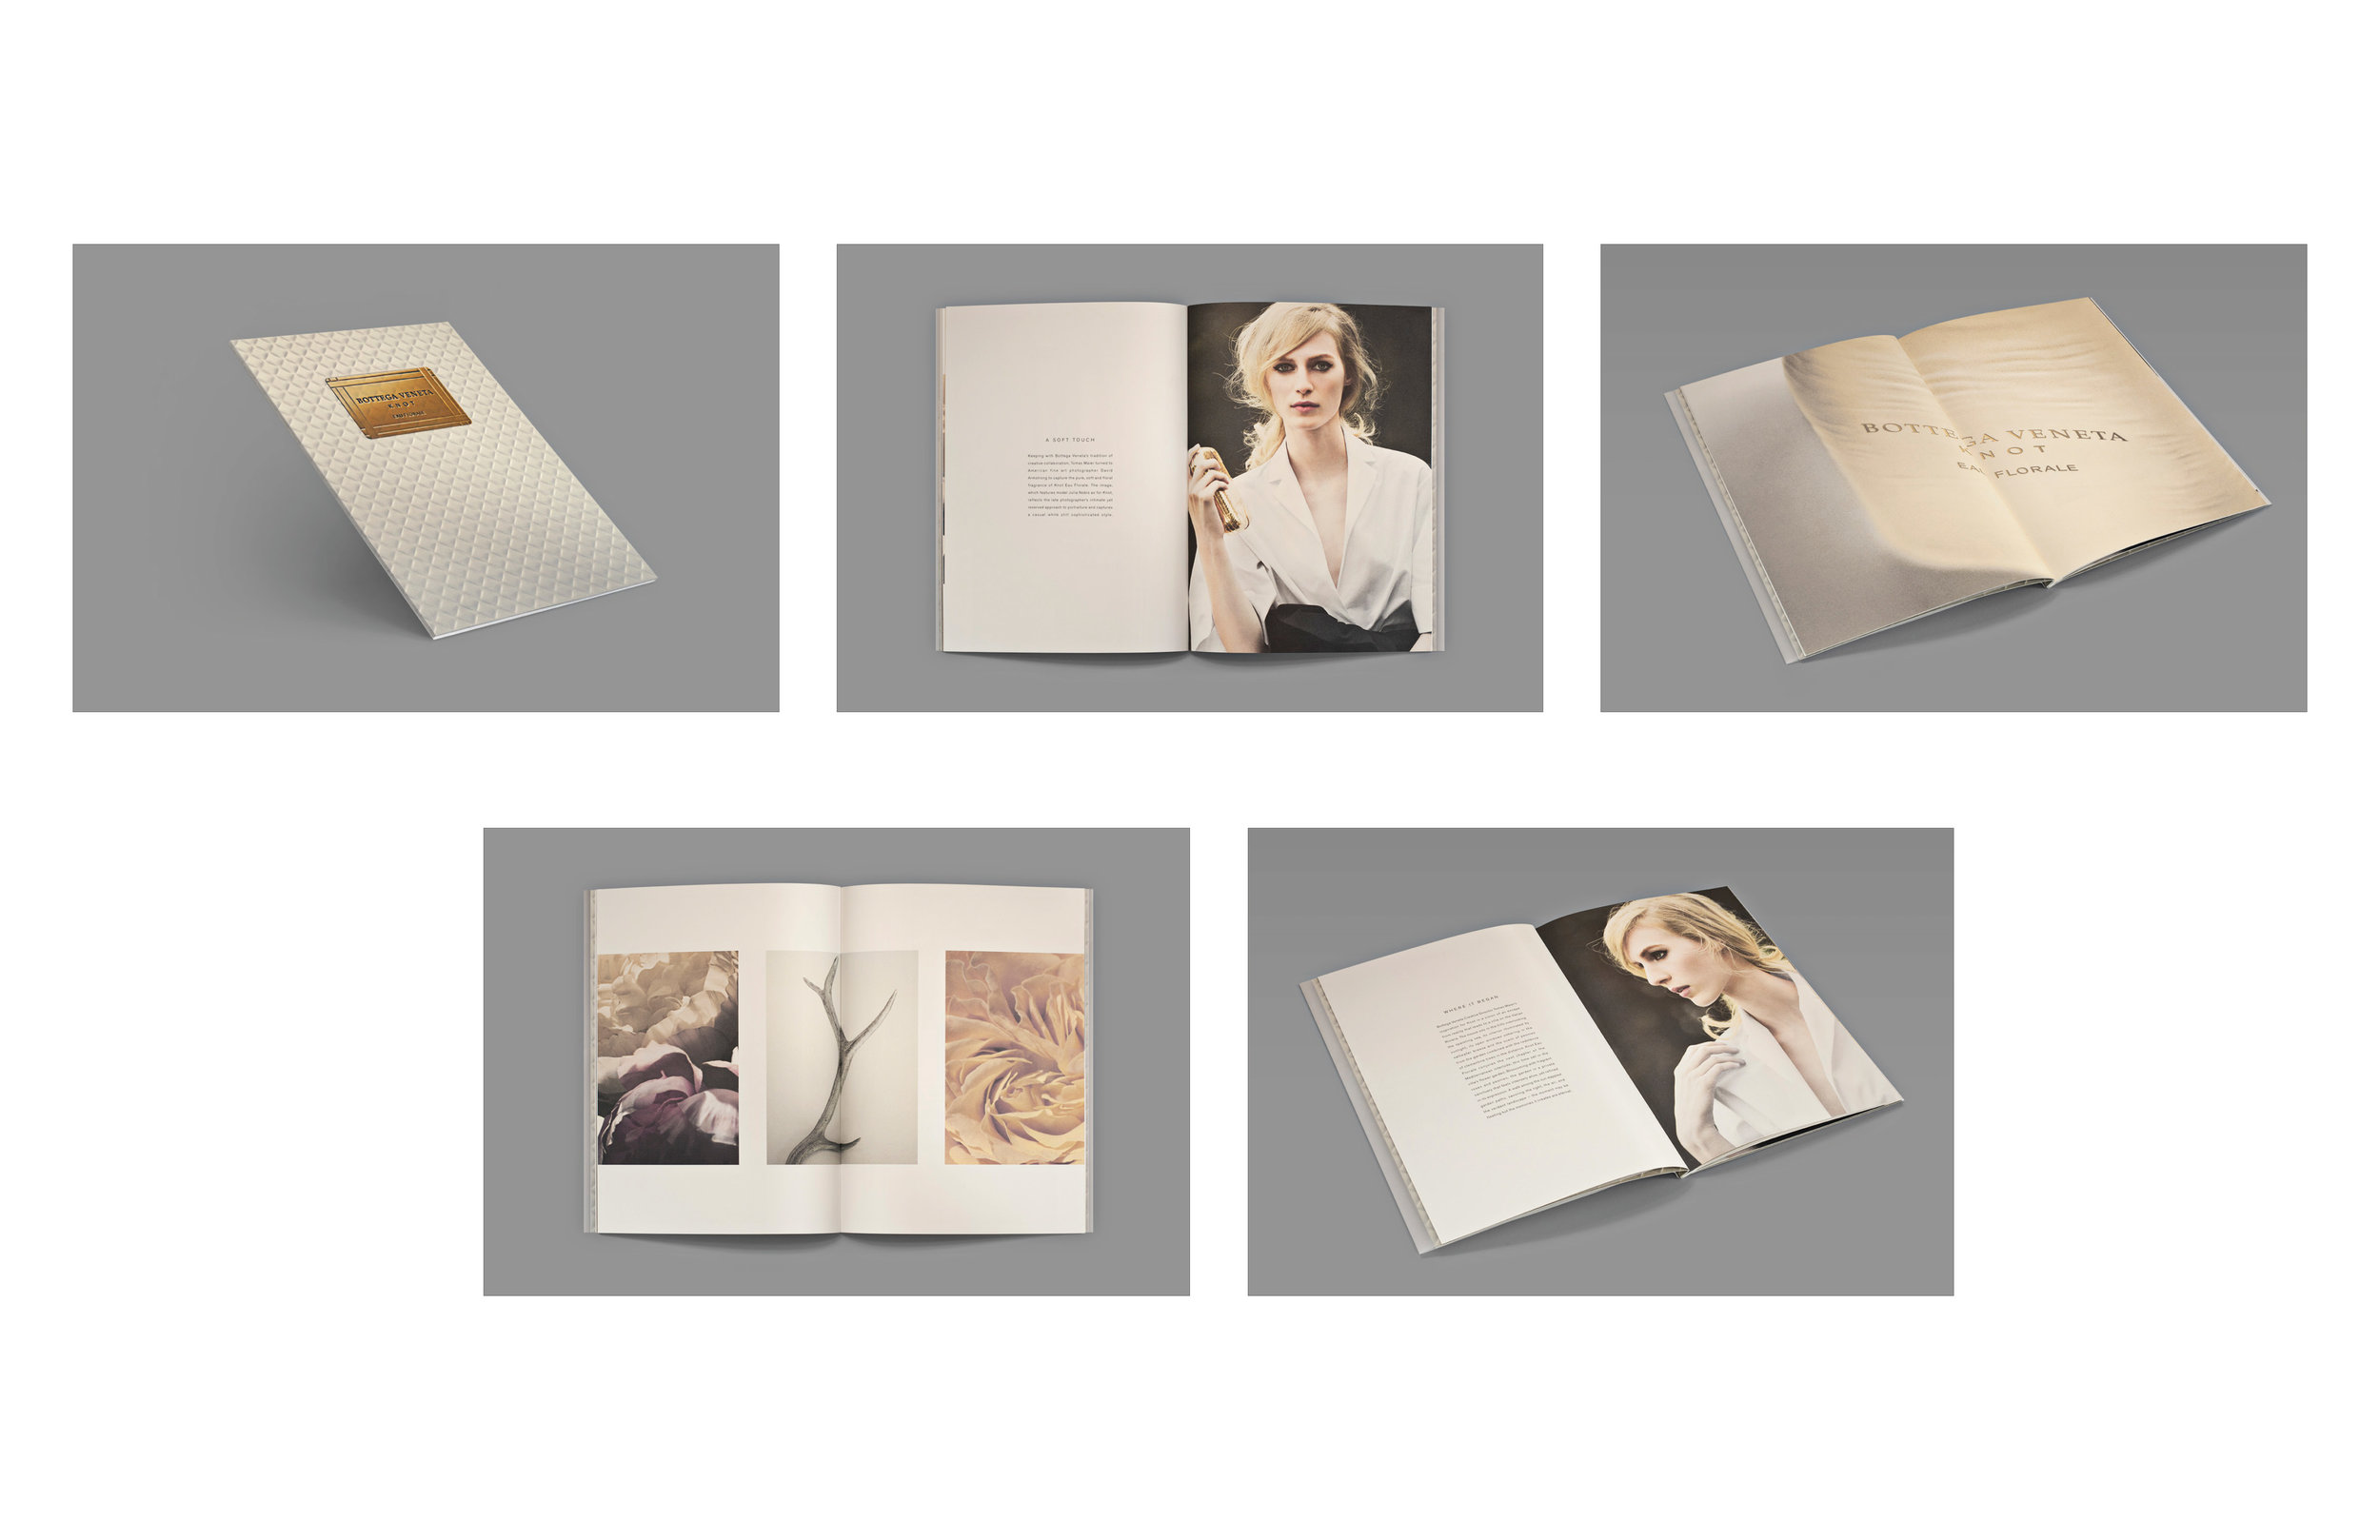 KNOT Eau Florale Press Kit Book